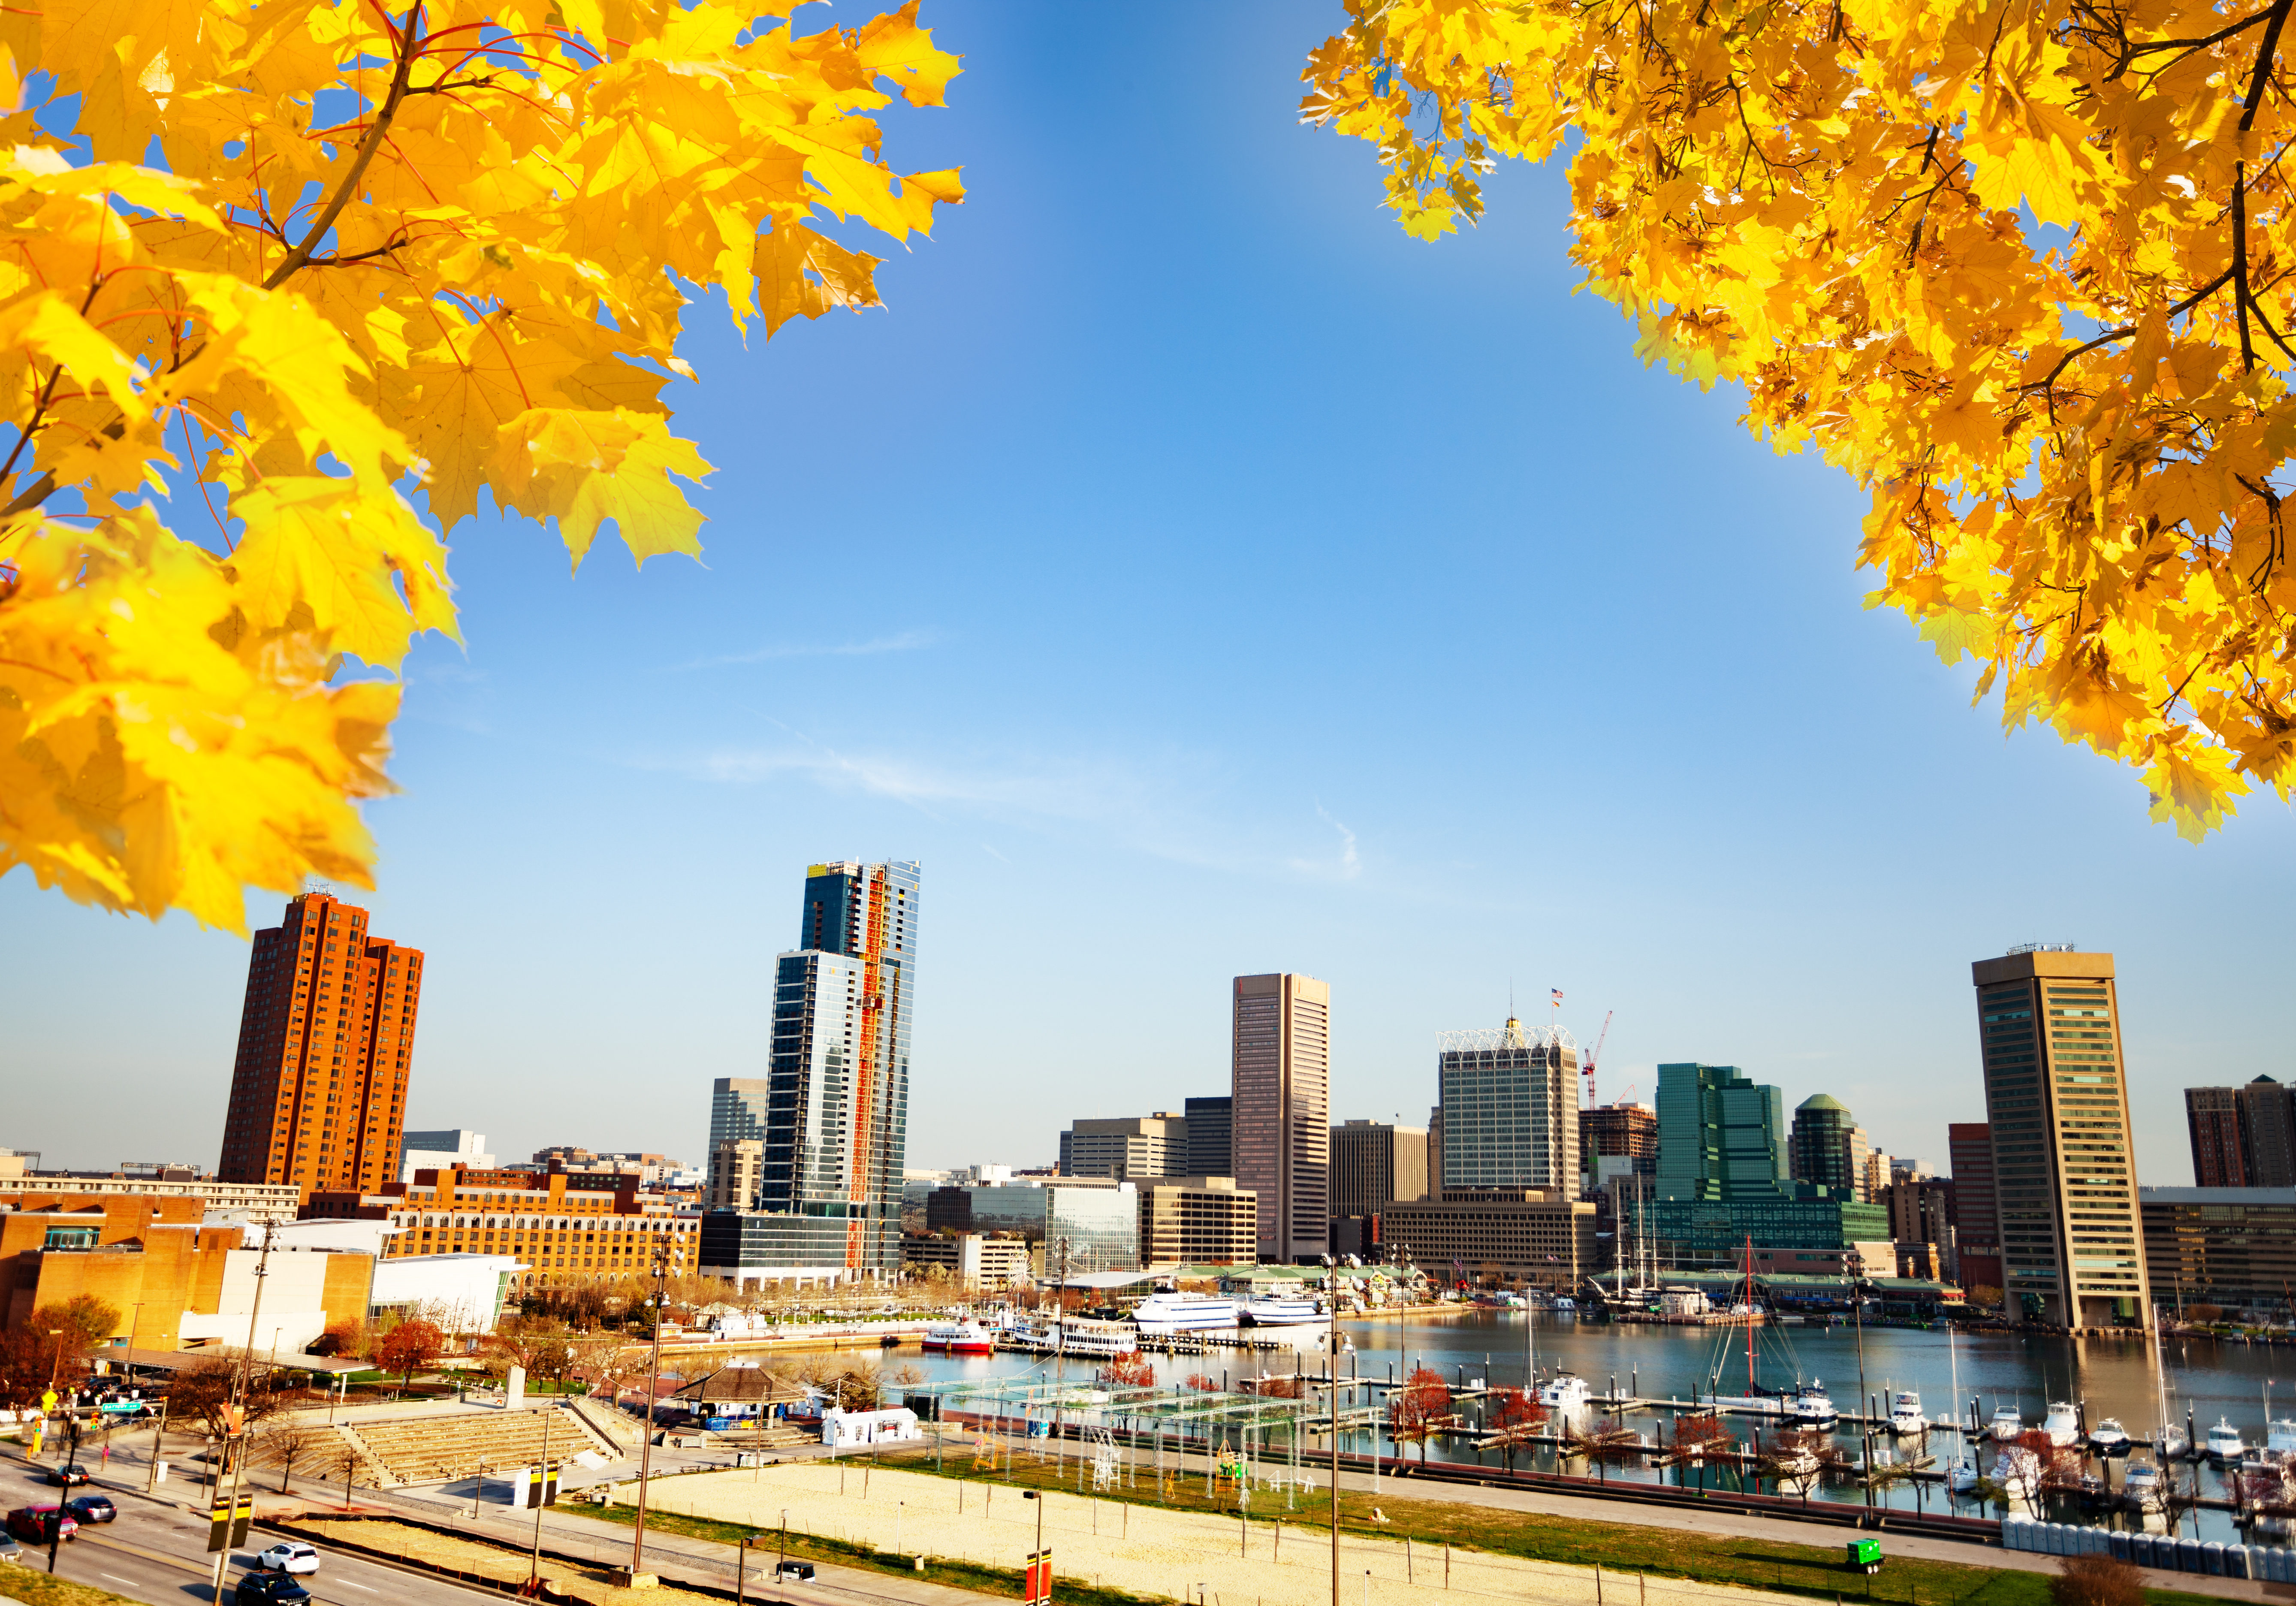 Panoramic view of Baltimore Inner Harbor in autumn, Maryland, USA